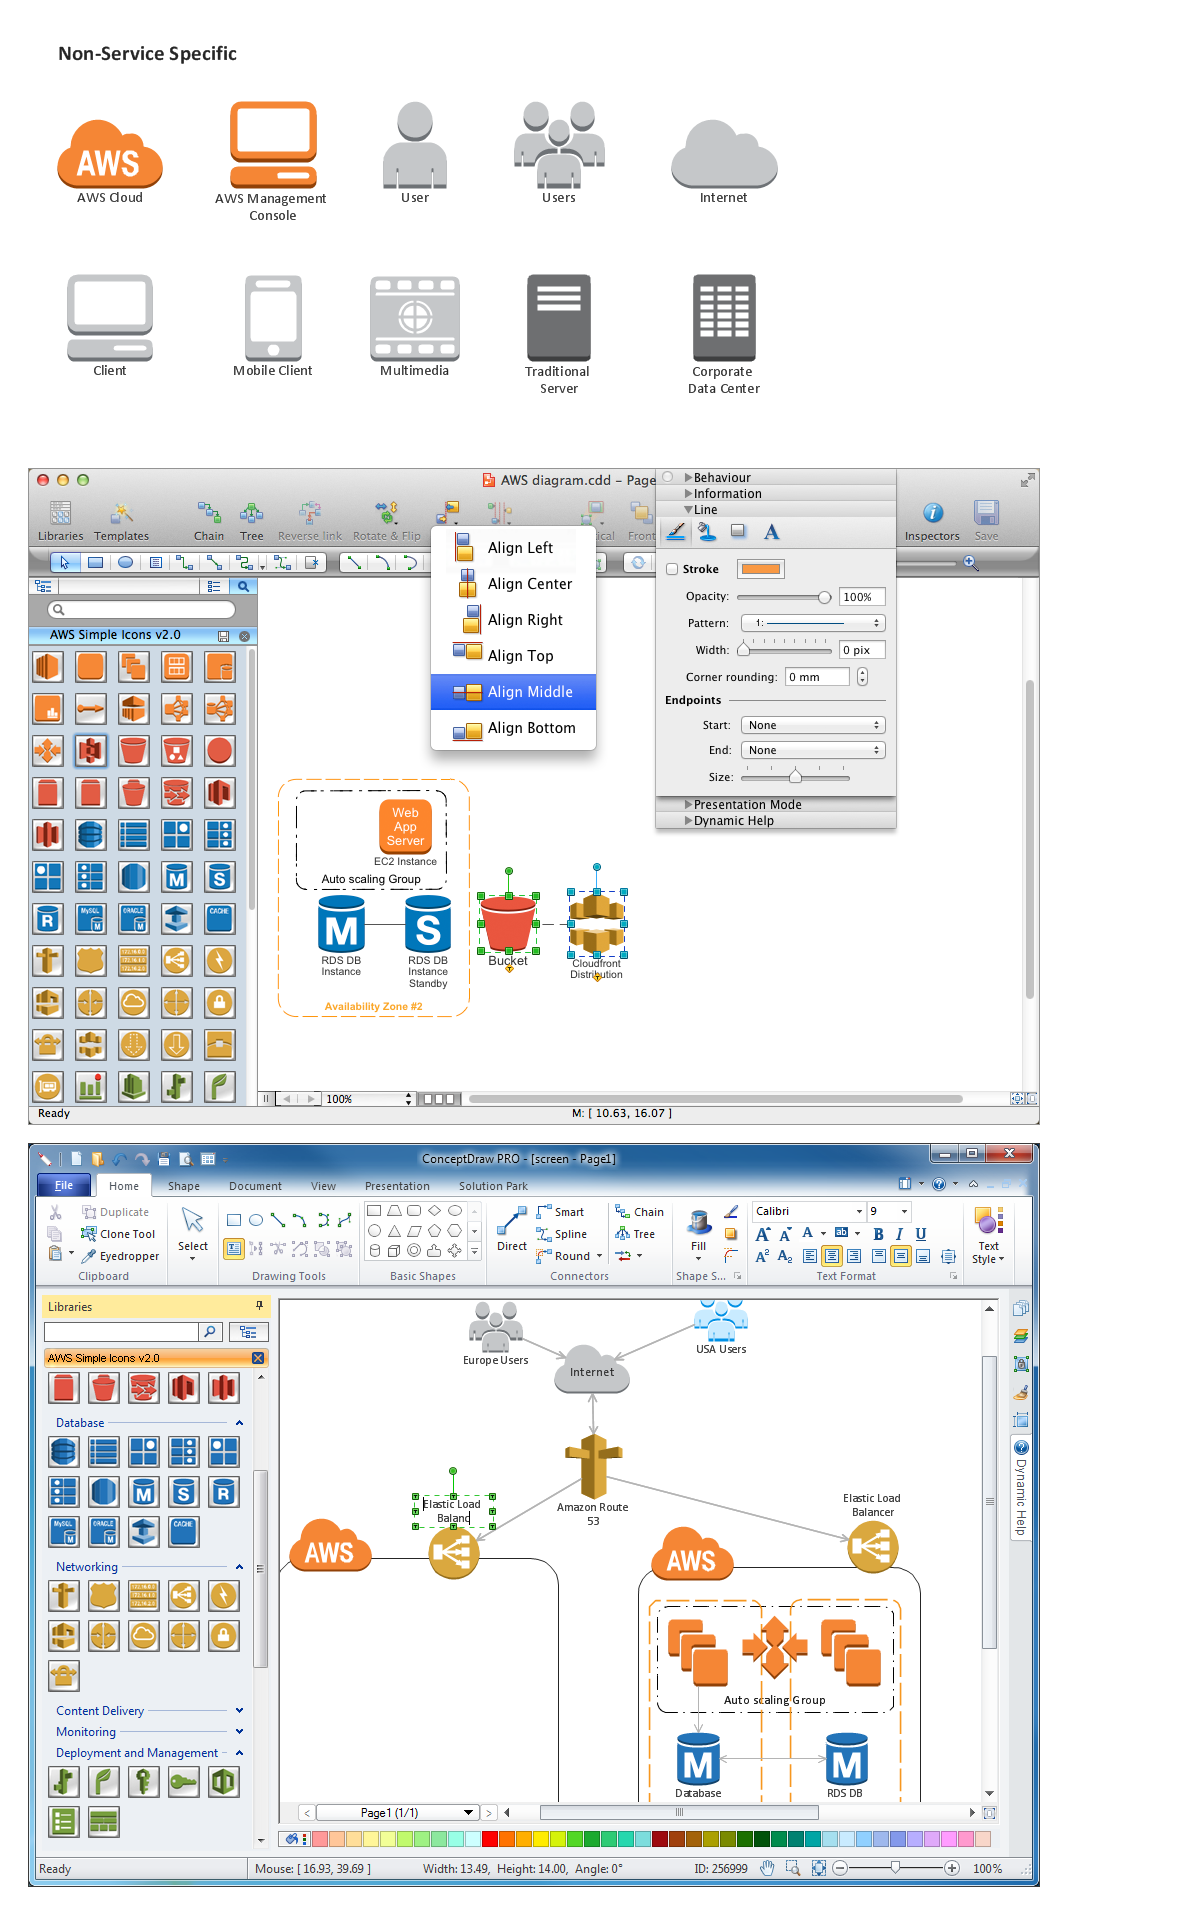 Amazon-Web-Services-AWS-Design-Elements-icons-Non-Service-Specific using conceptdraw solution park web tool